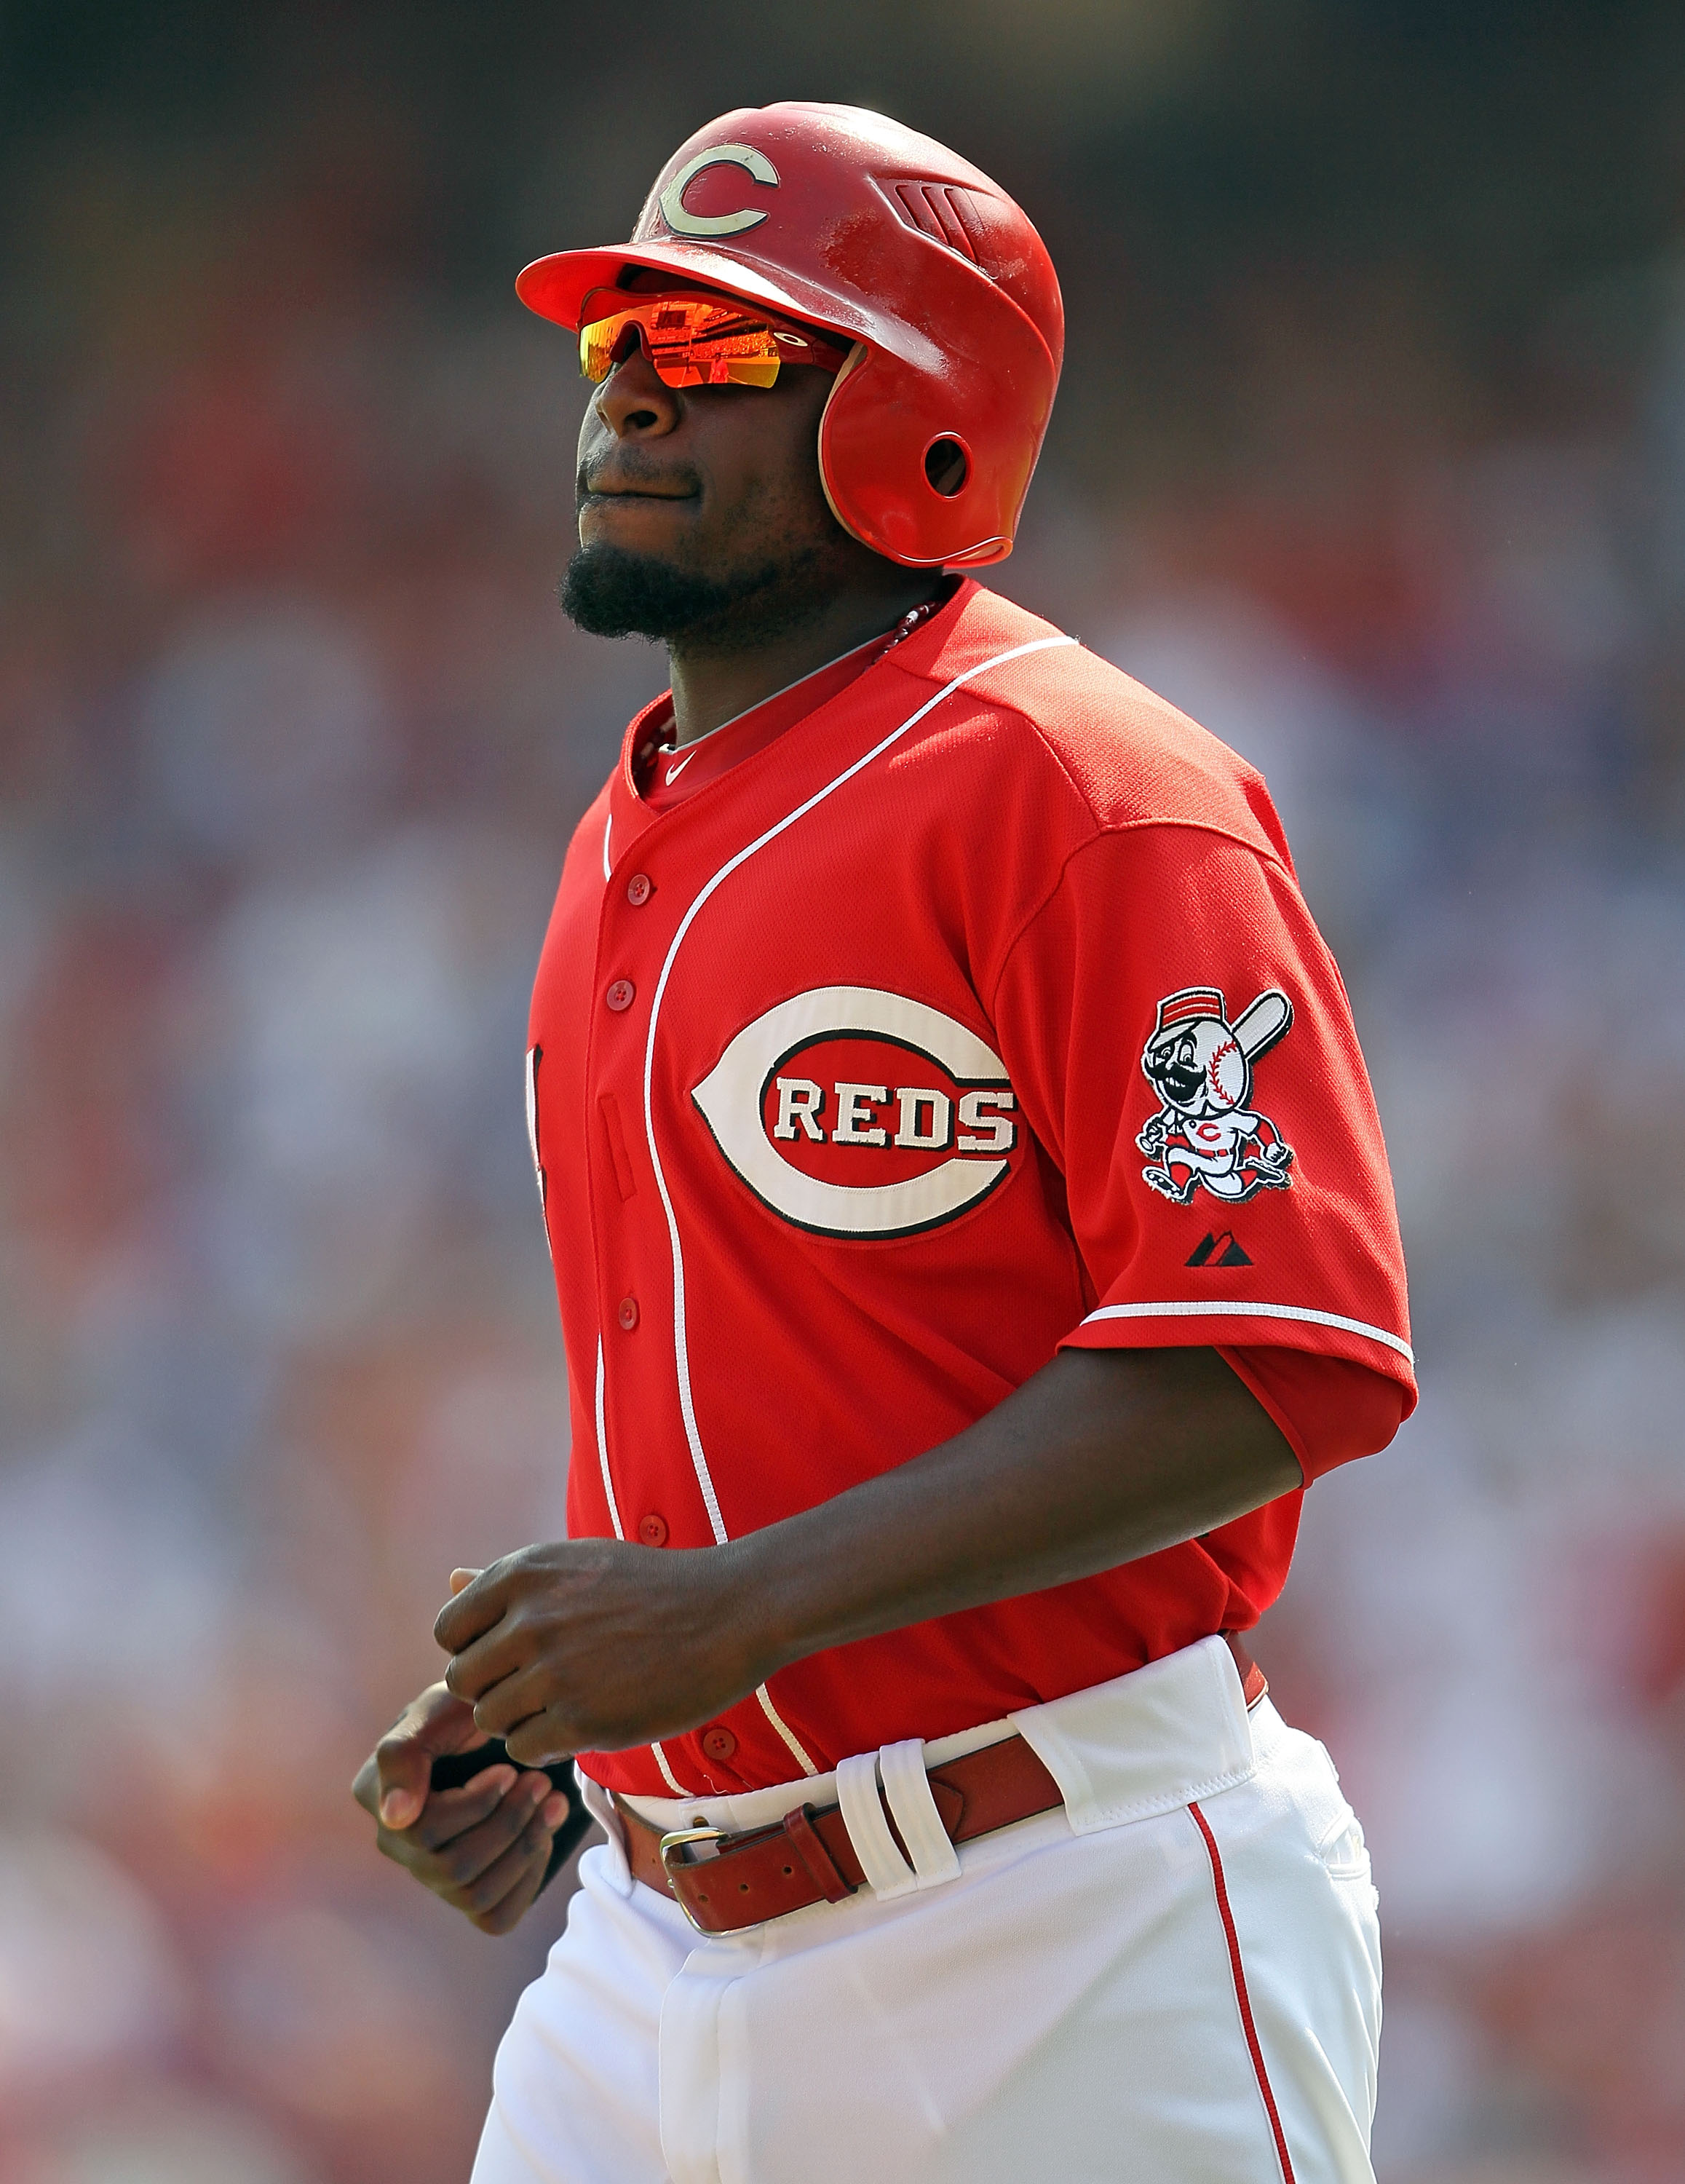 CINCINNATI - AUGUST 29:  Brandon Phillips #4 of the Cincinnati Reds is pictured during the game against the Chicago Cubs at Great American Ball Park on August 29, 2010 in Cincinnati, Ohio.  (Photo by Andy Lyons/Getty Images)